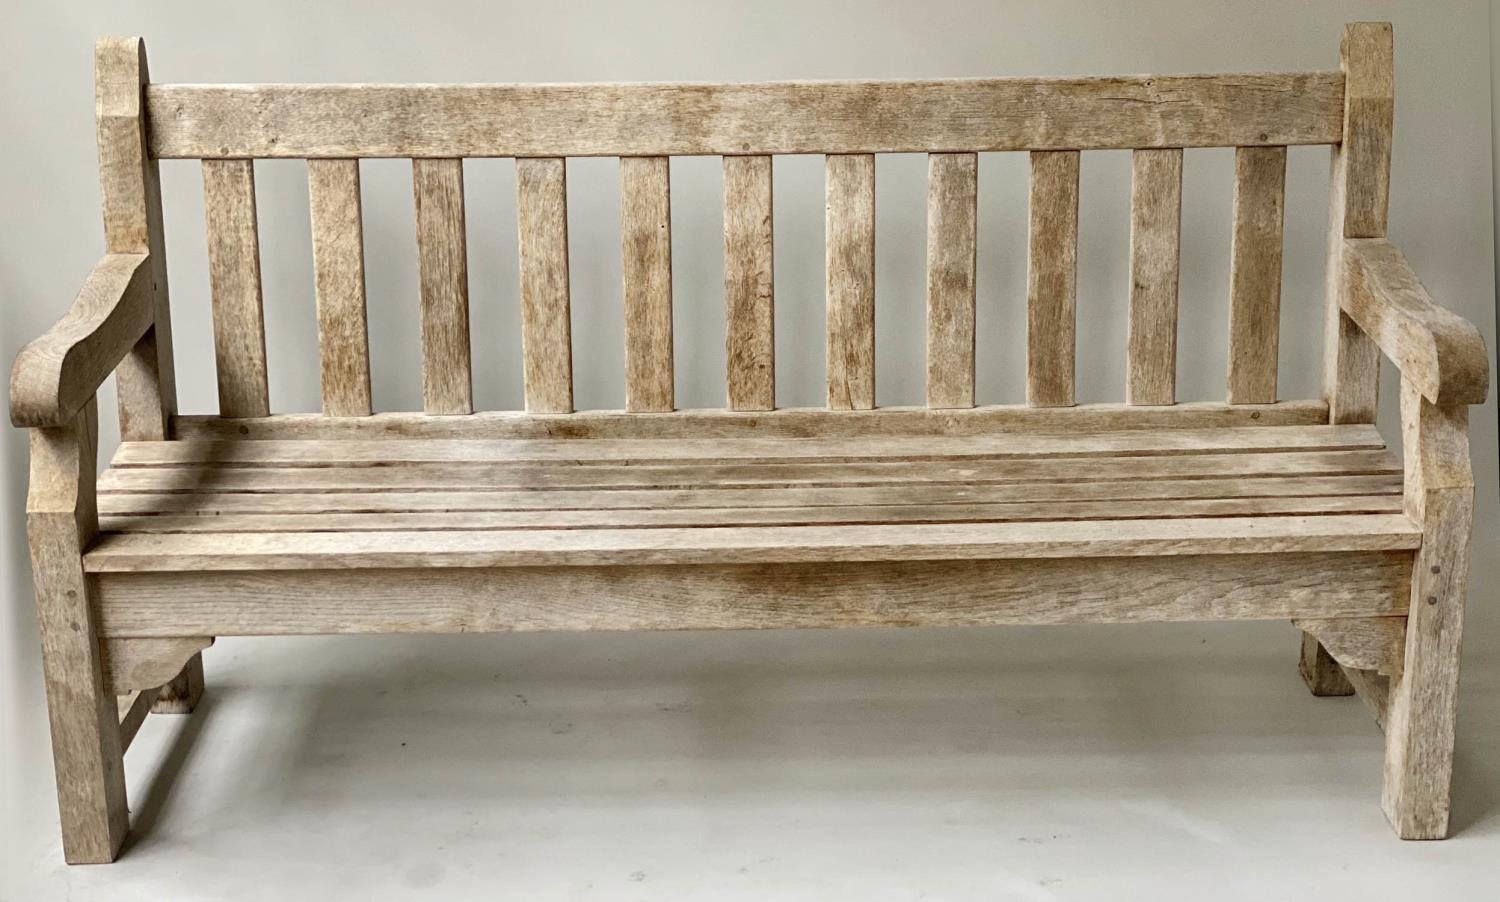 ENGLISH GARDEN BENCH, weathered English oak of substantial and slatted construction, 168cm W.